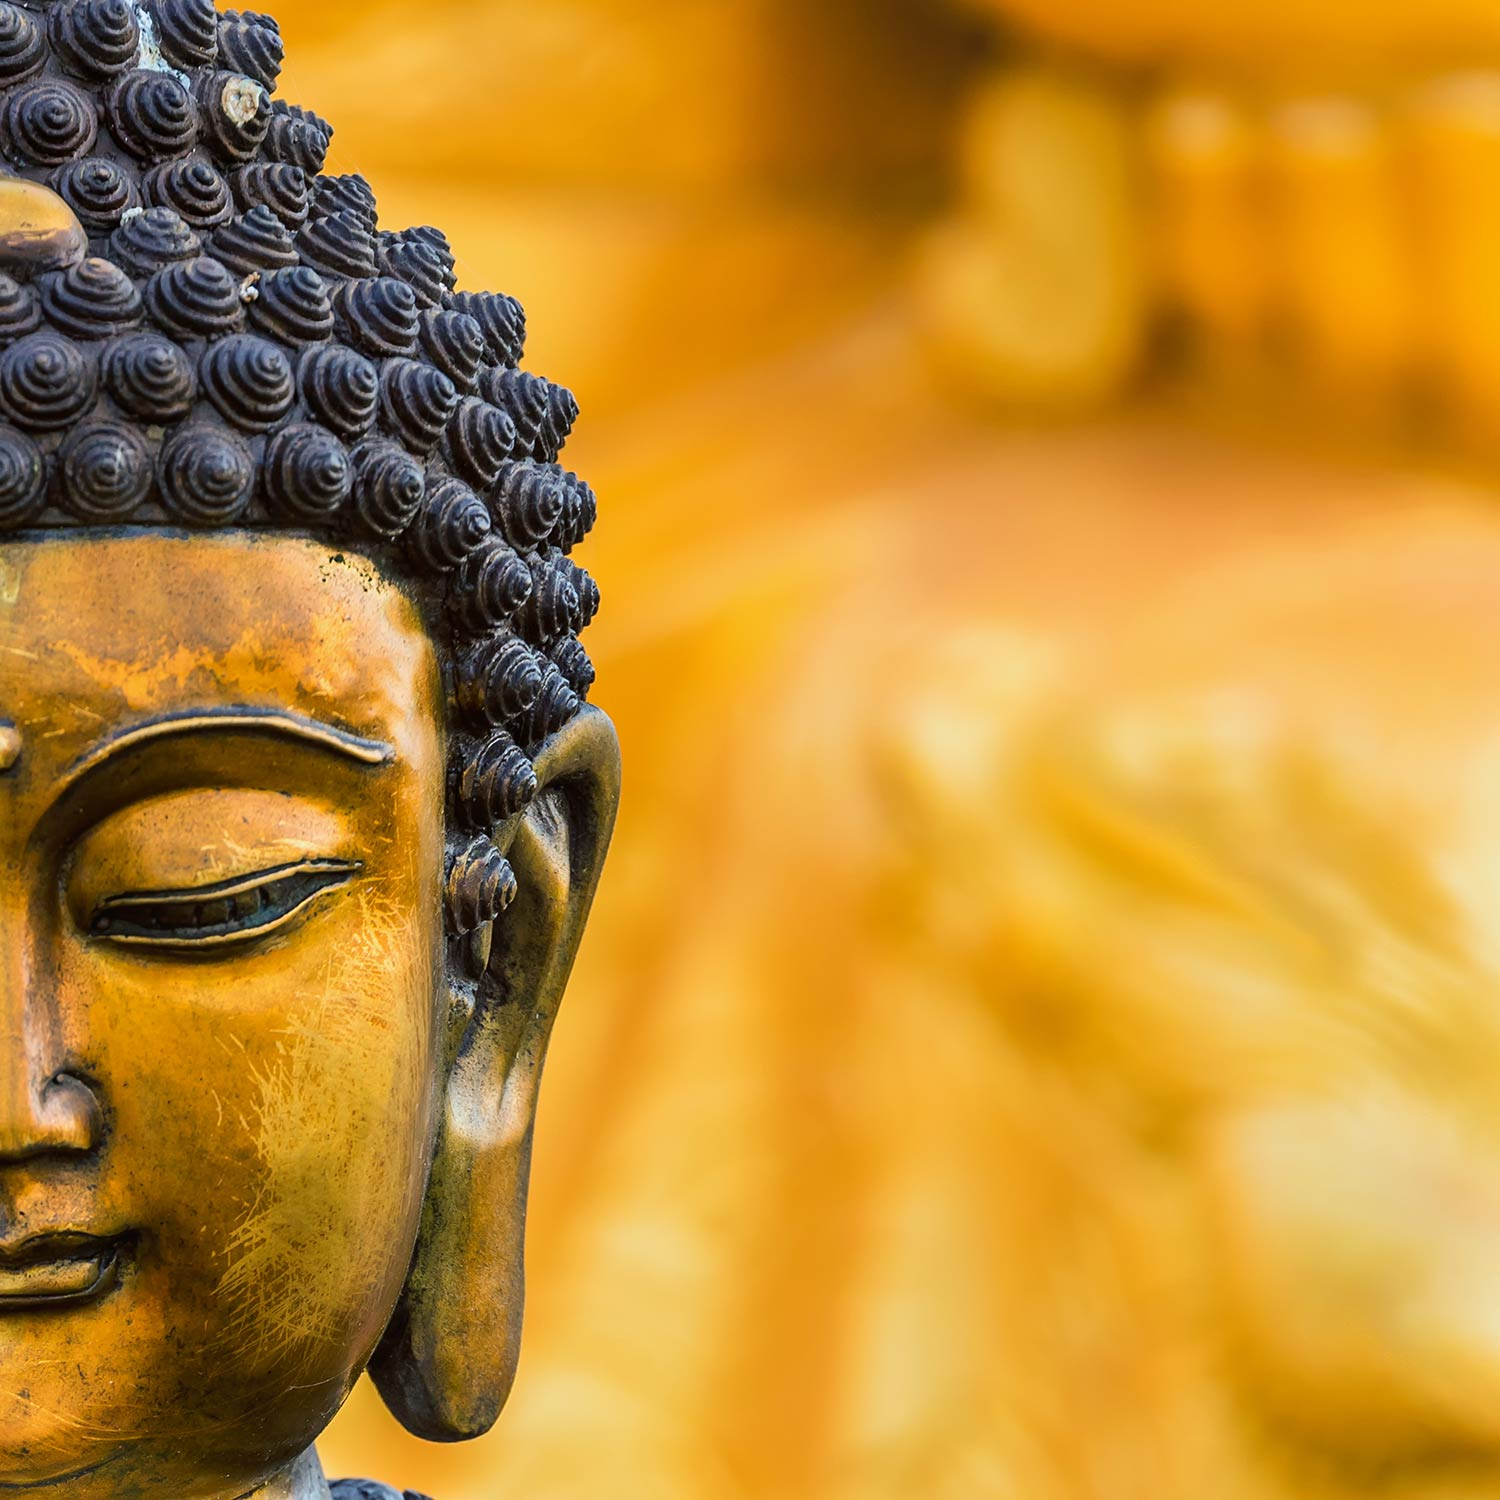 35 Best Free Buddha Wallpapers - WallpaperAccess